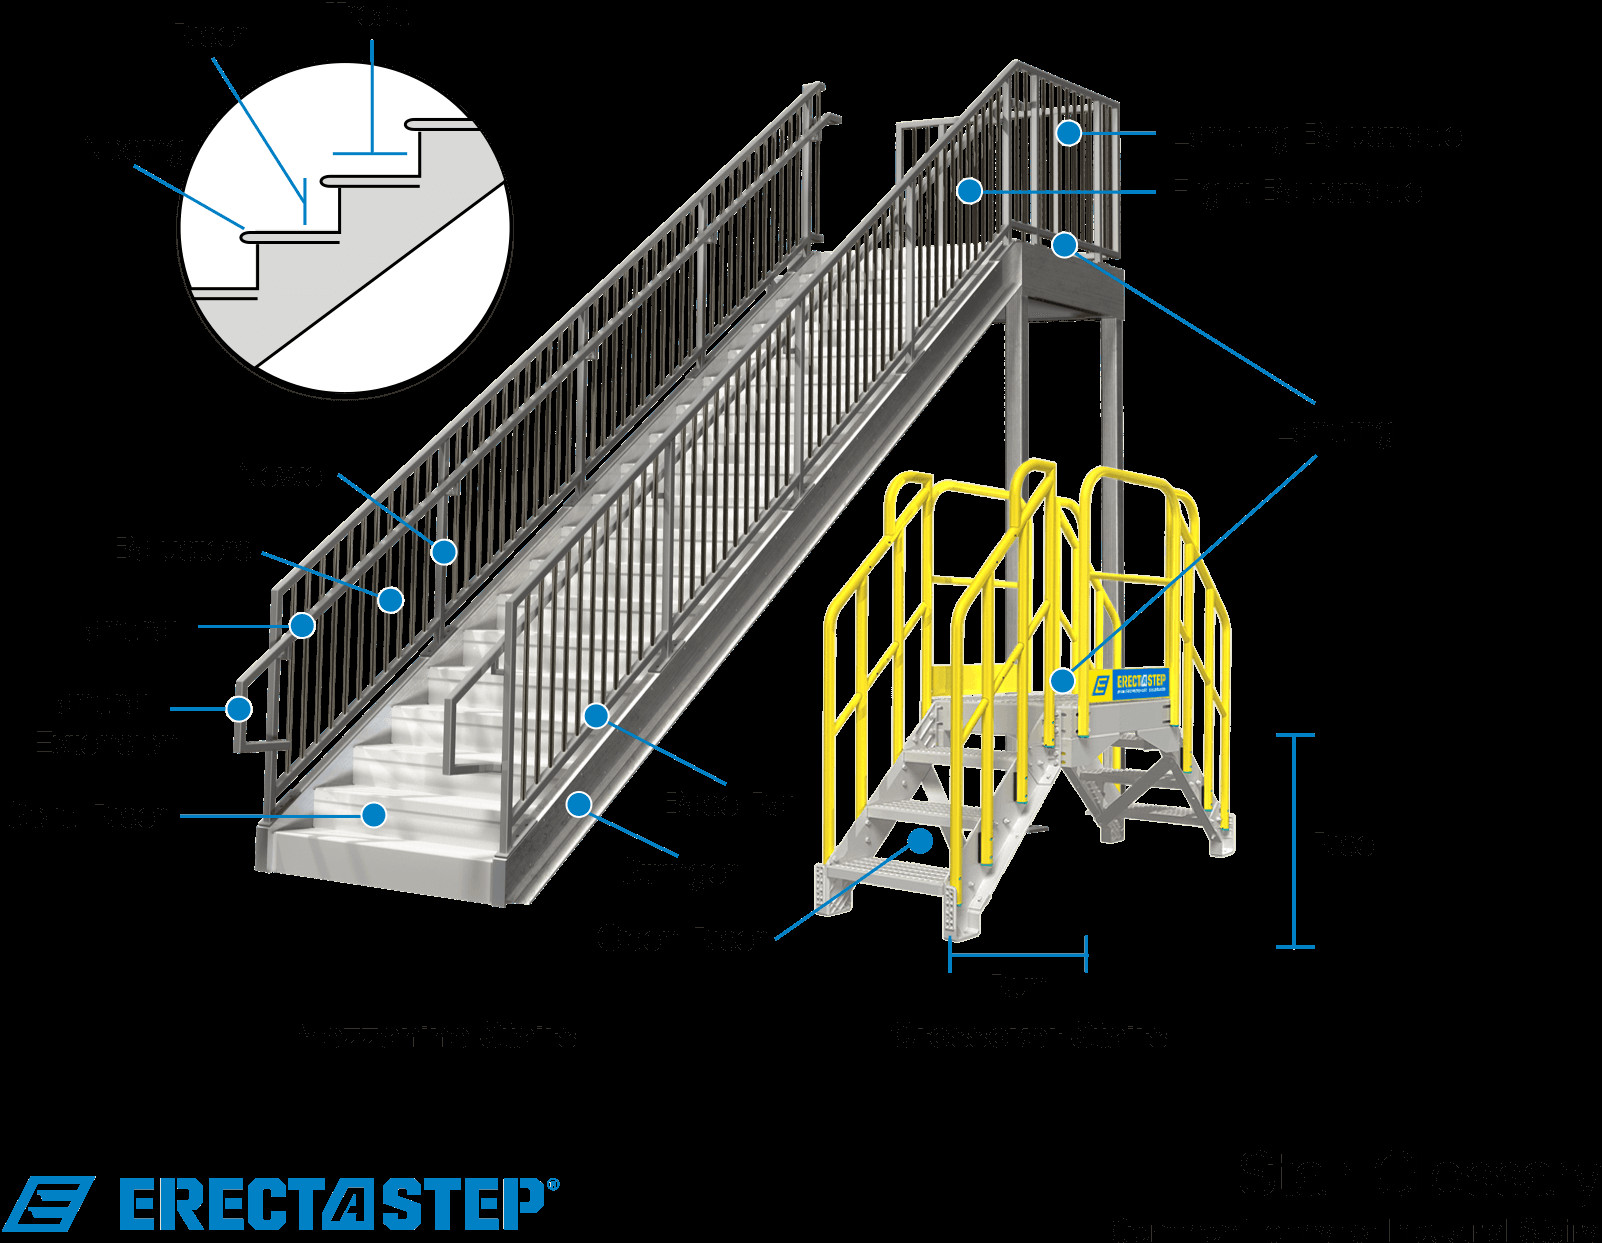 Best ideas about Parts Of A Staircase . Save or Pin Stair Terminology and Types Industrial stairs glossary Now.